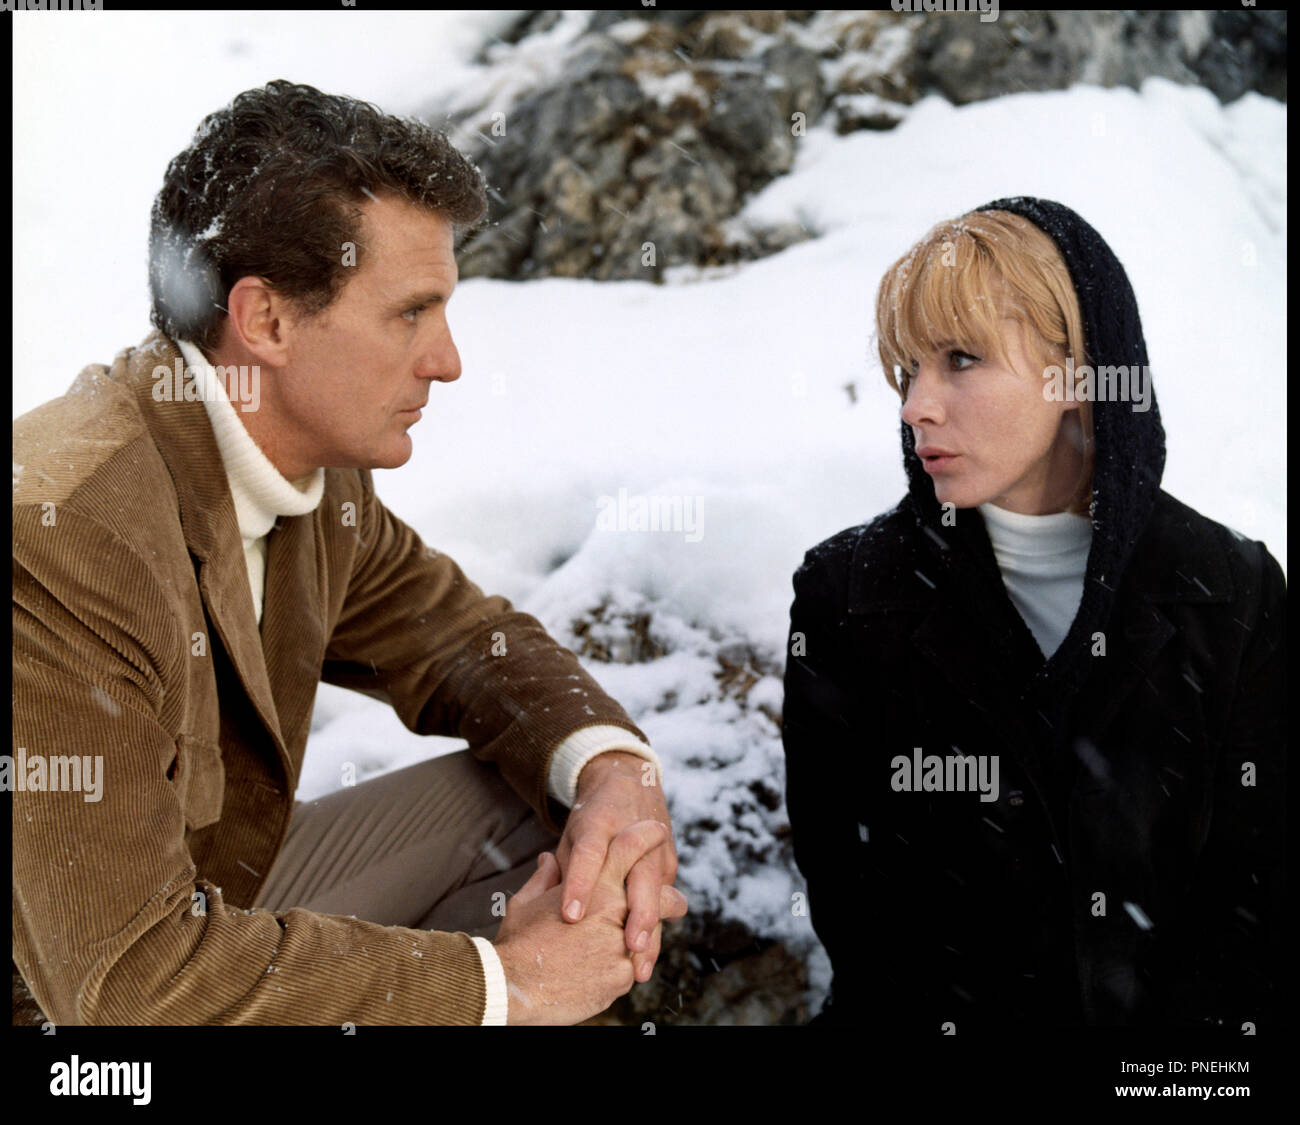 aff8706e0f117a Donna Anderson Stock Photos & Donna Anderson Stock Images - Alamy